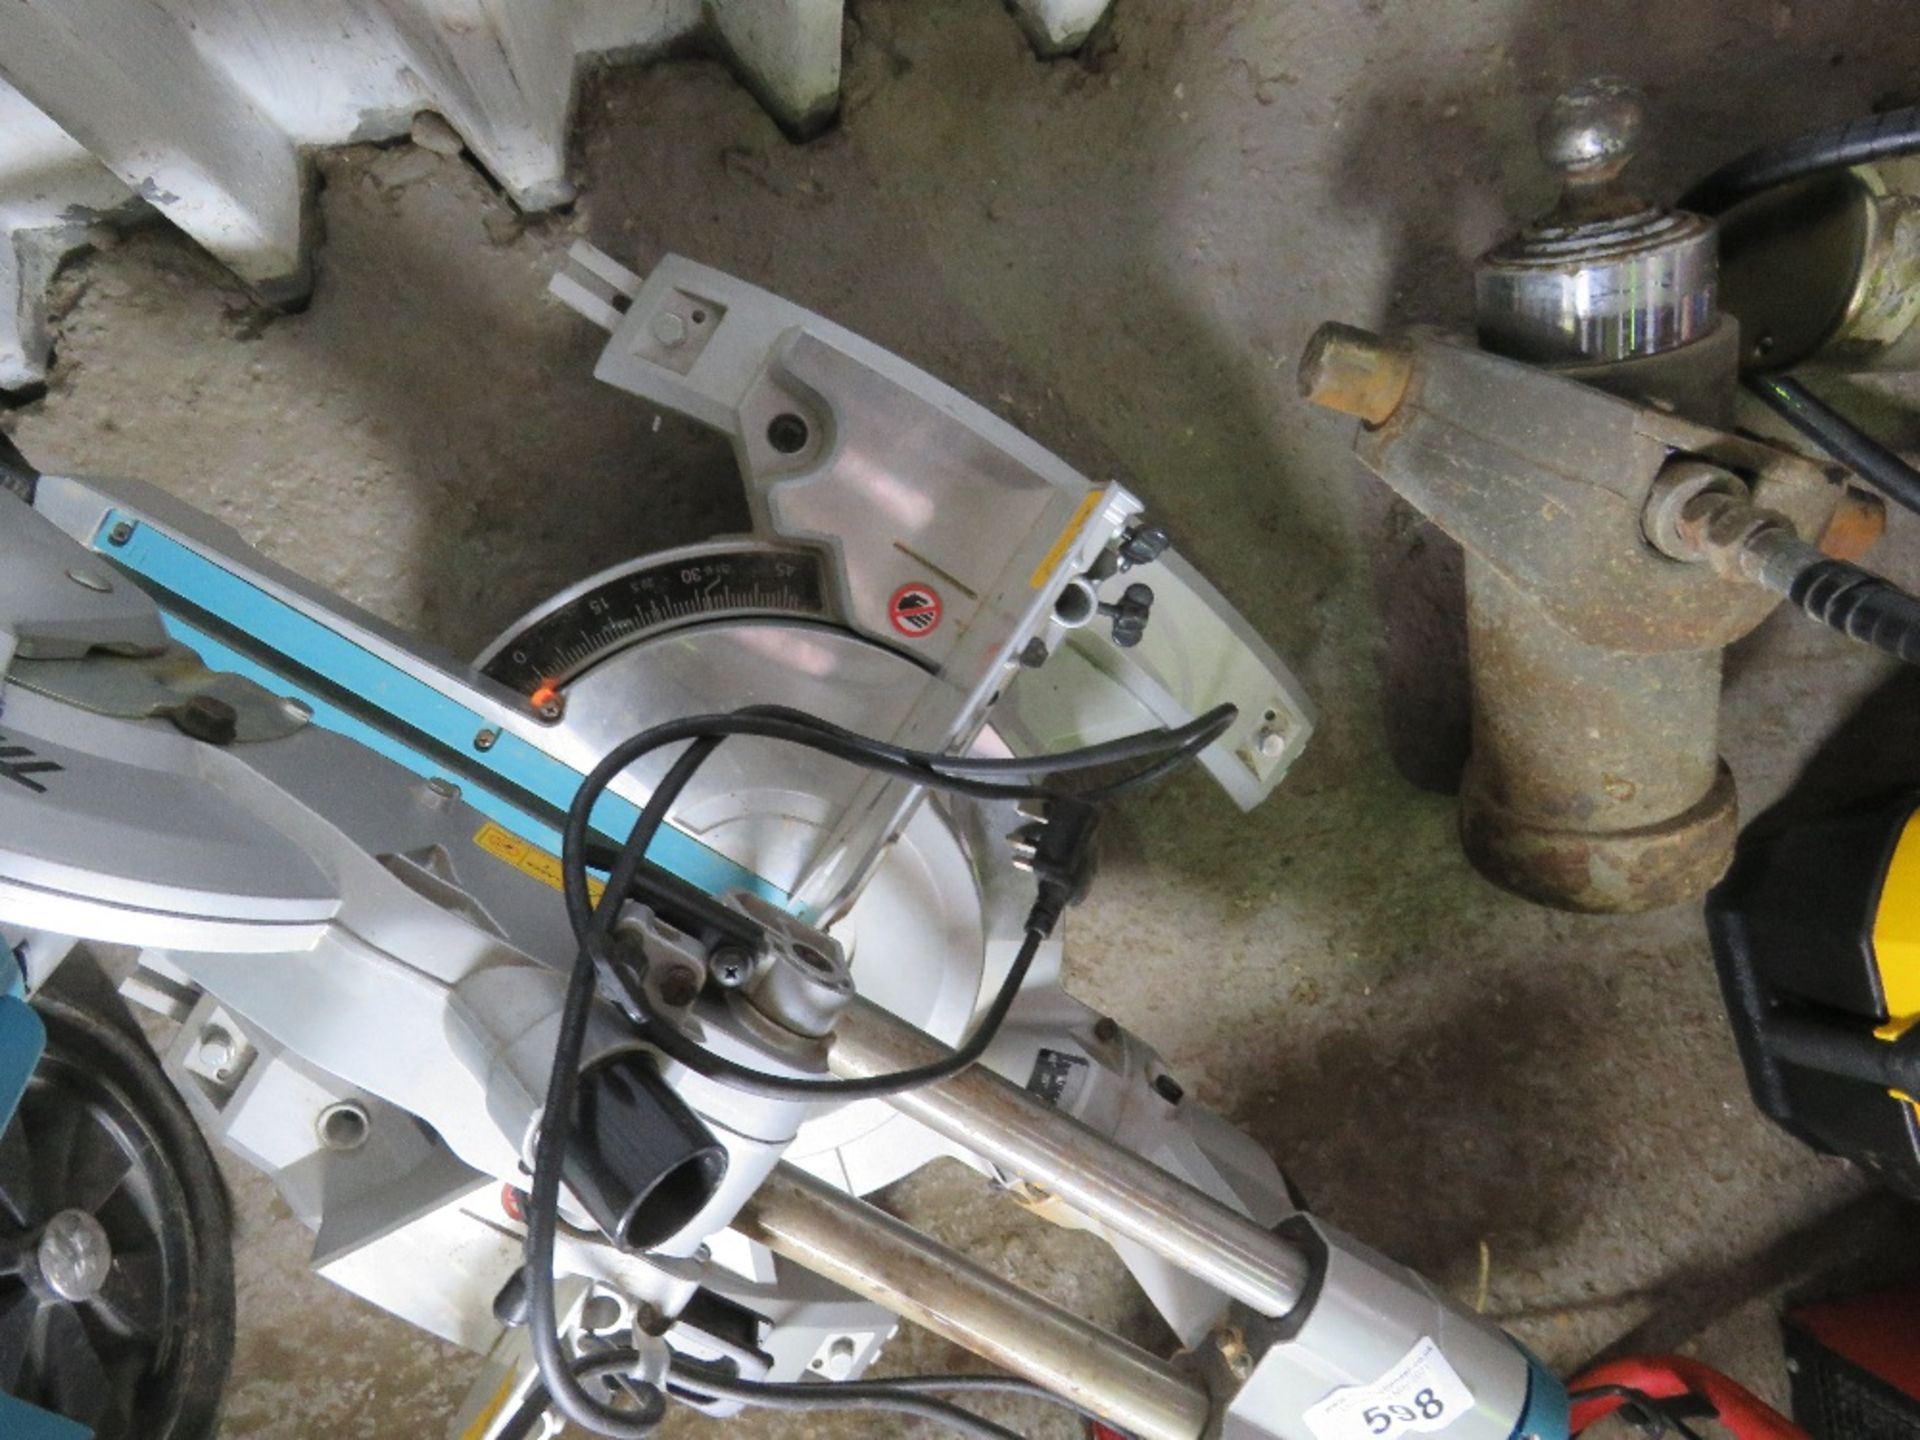 MAKITA 240VOLT MITRE SAW UNIT. UNTESTED, CONDITION UNKNOWN. - Image 2 of 3